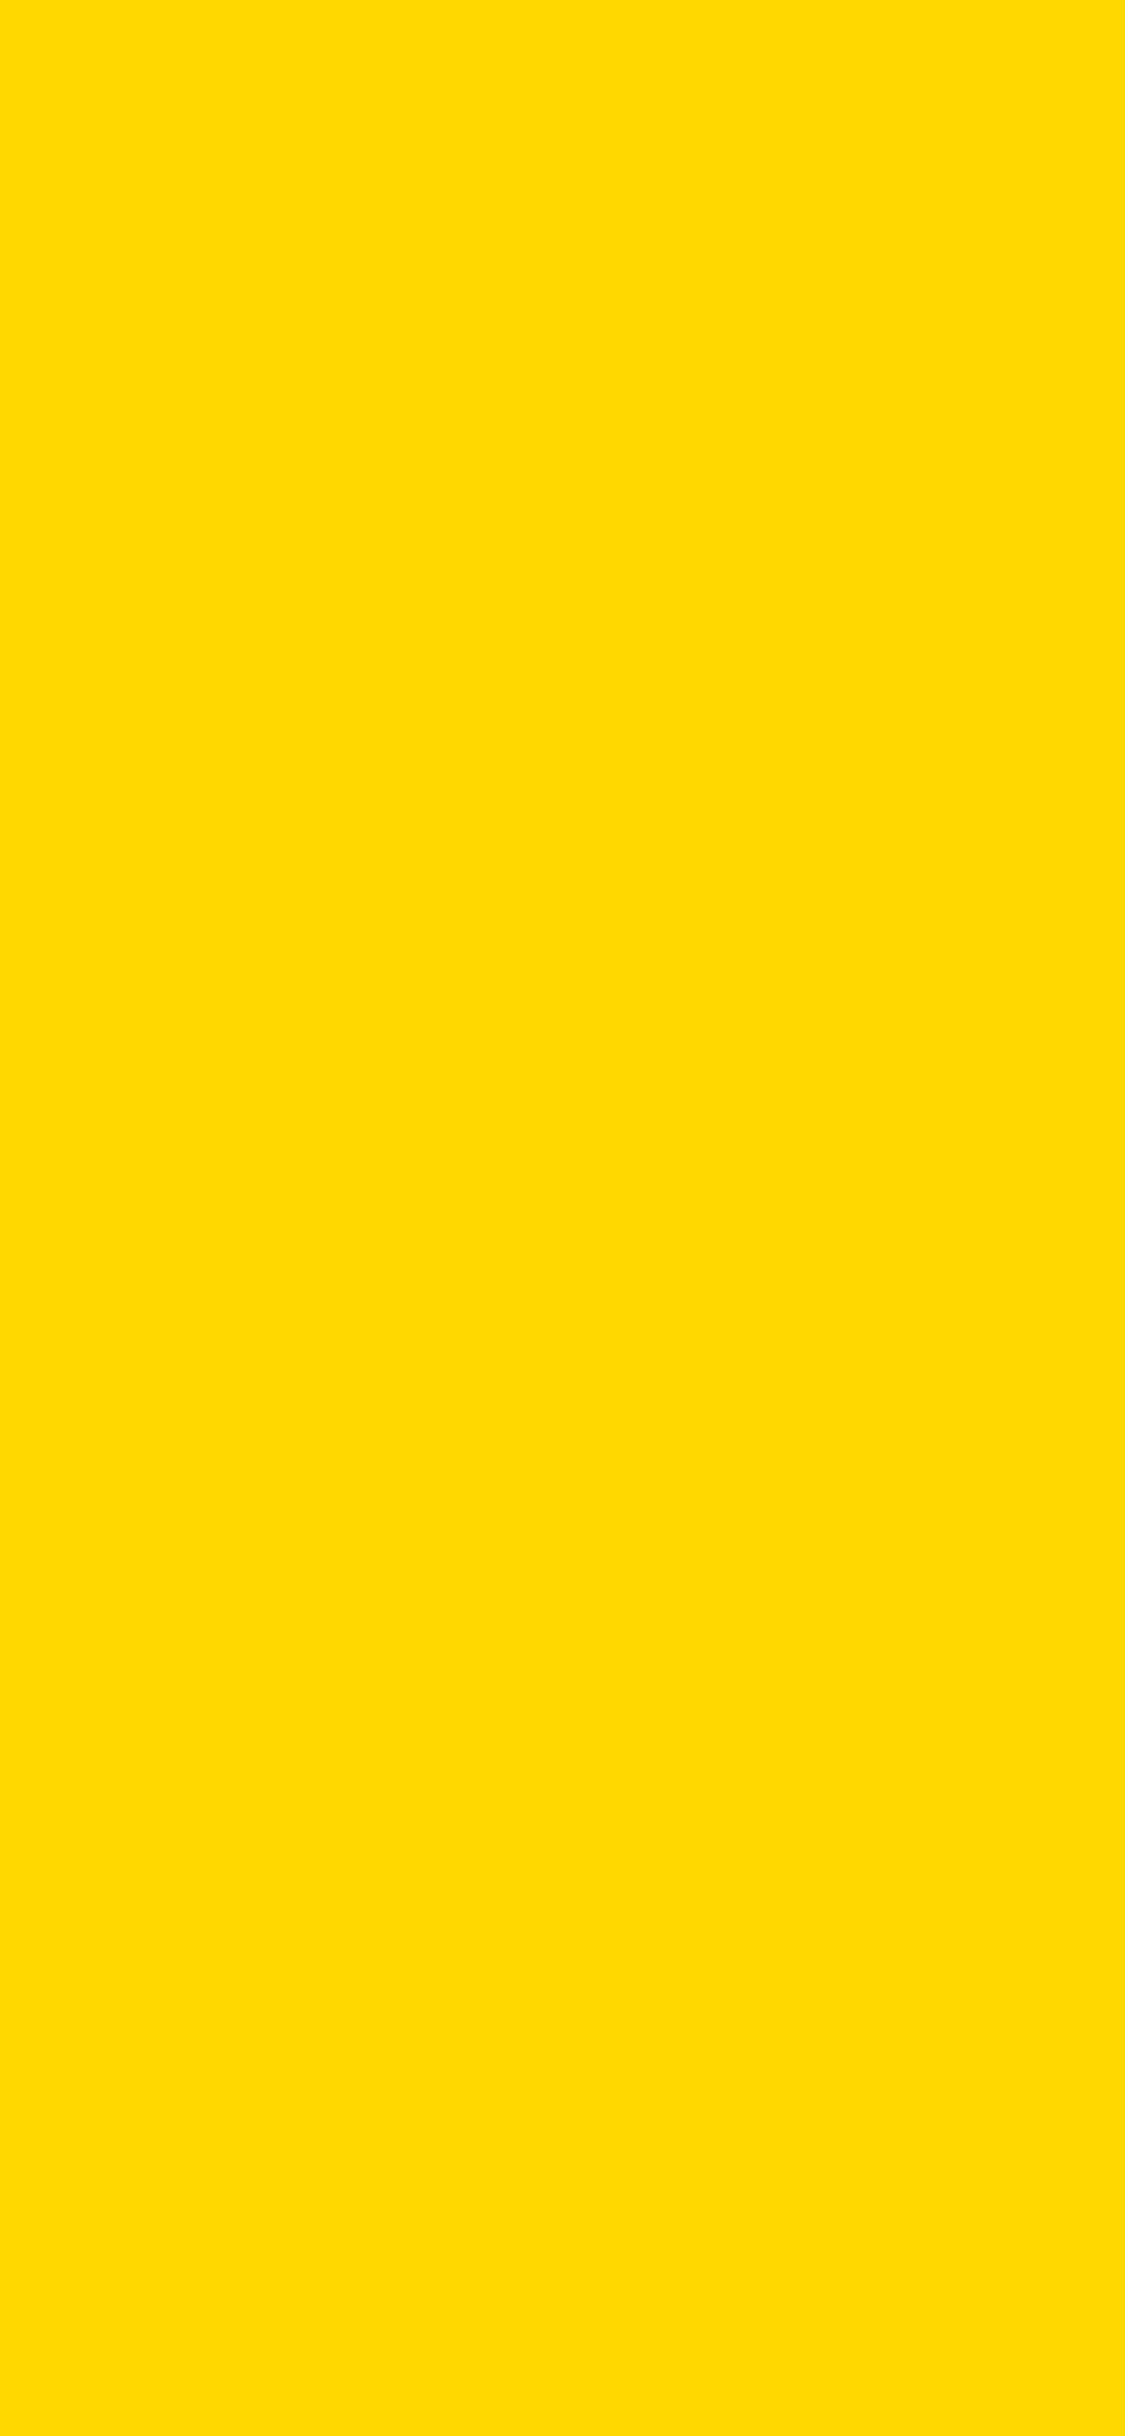 1125x2436 School Bus Yellow Solid Color Background